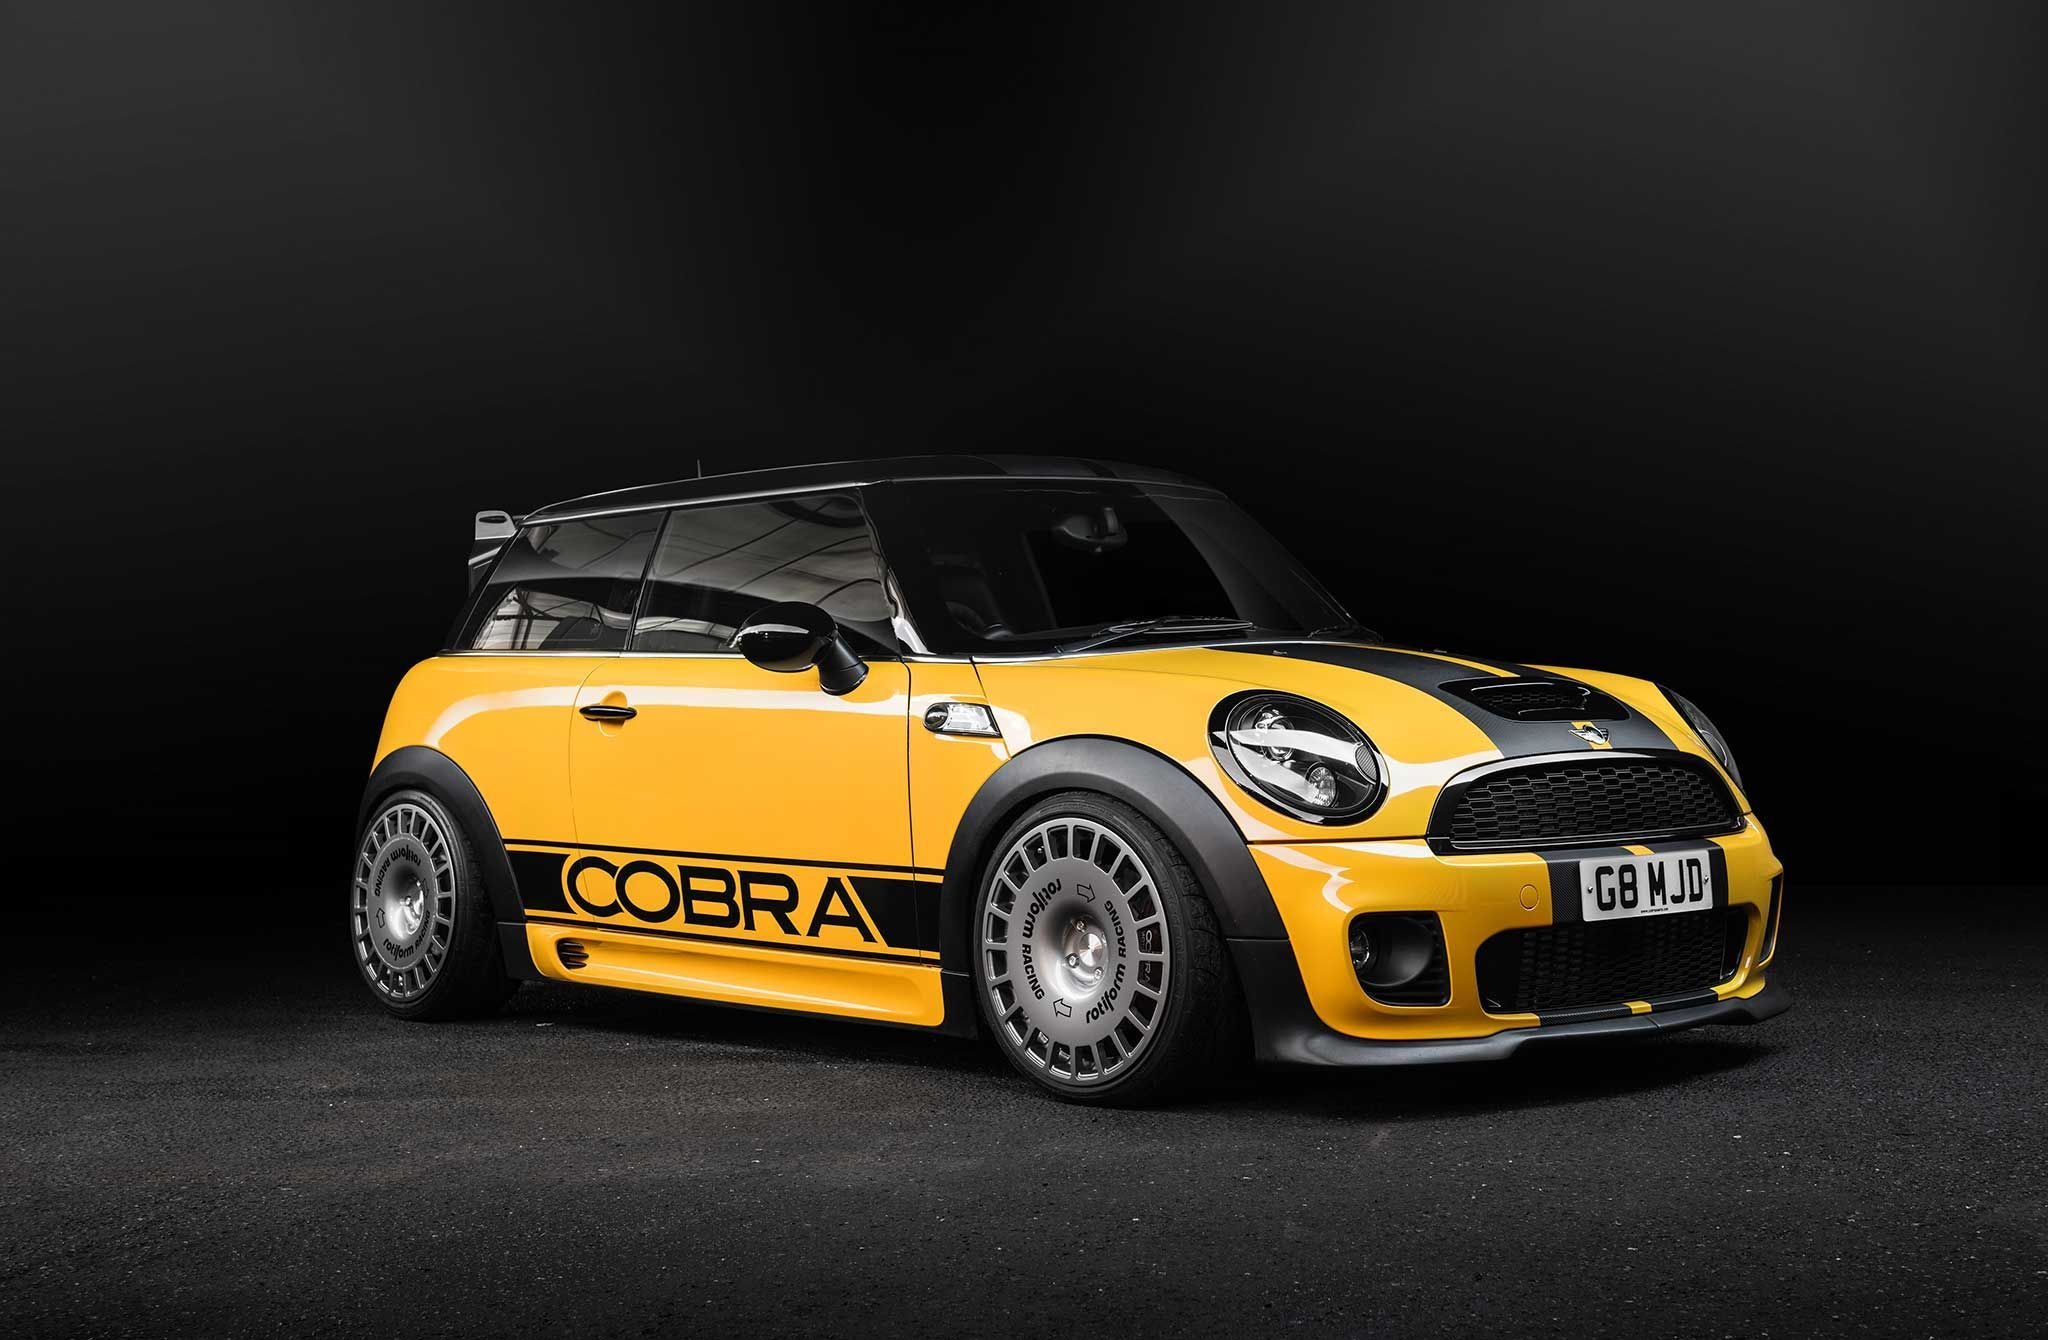 Mini cooper s r56 lime green mini minicooper rvinyl http www rvinyl com mini accessories html mini cooper pinterest